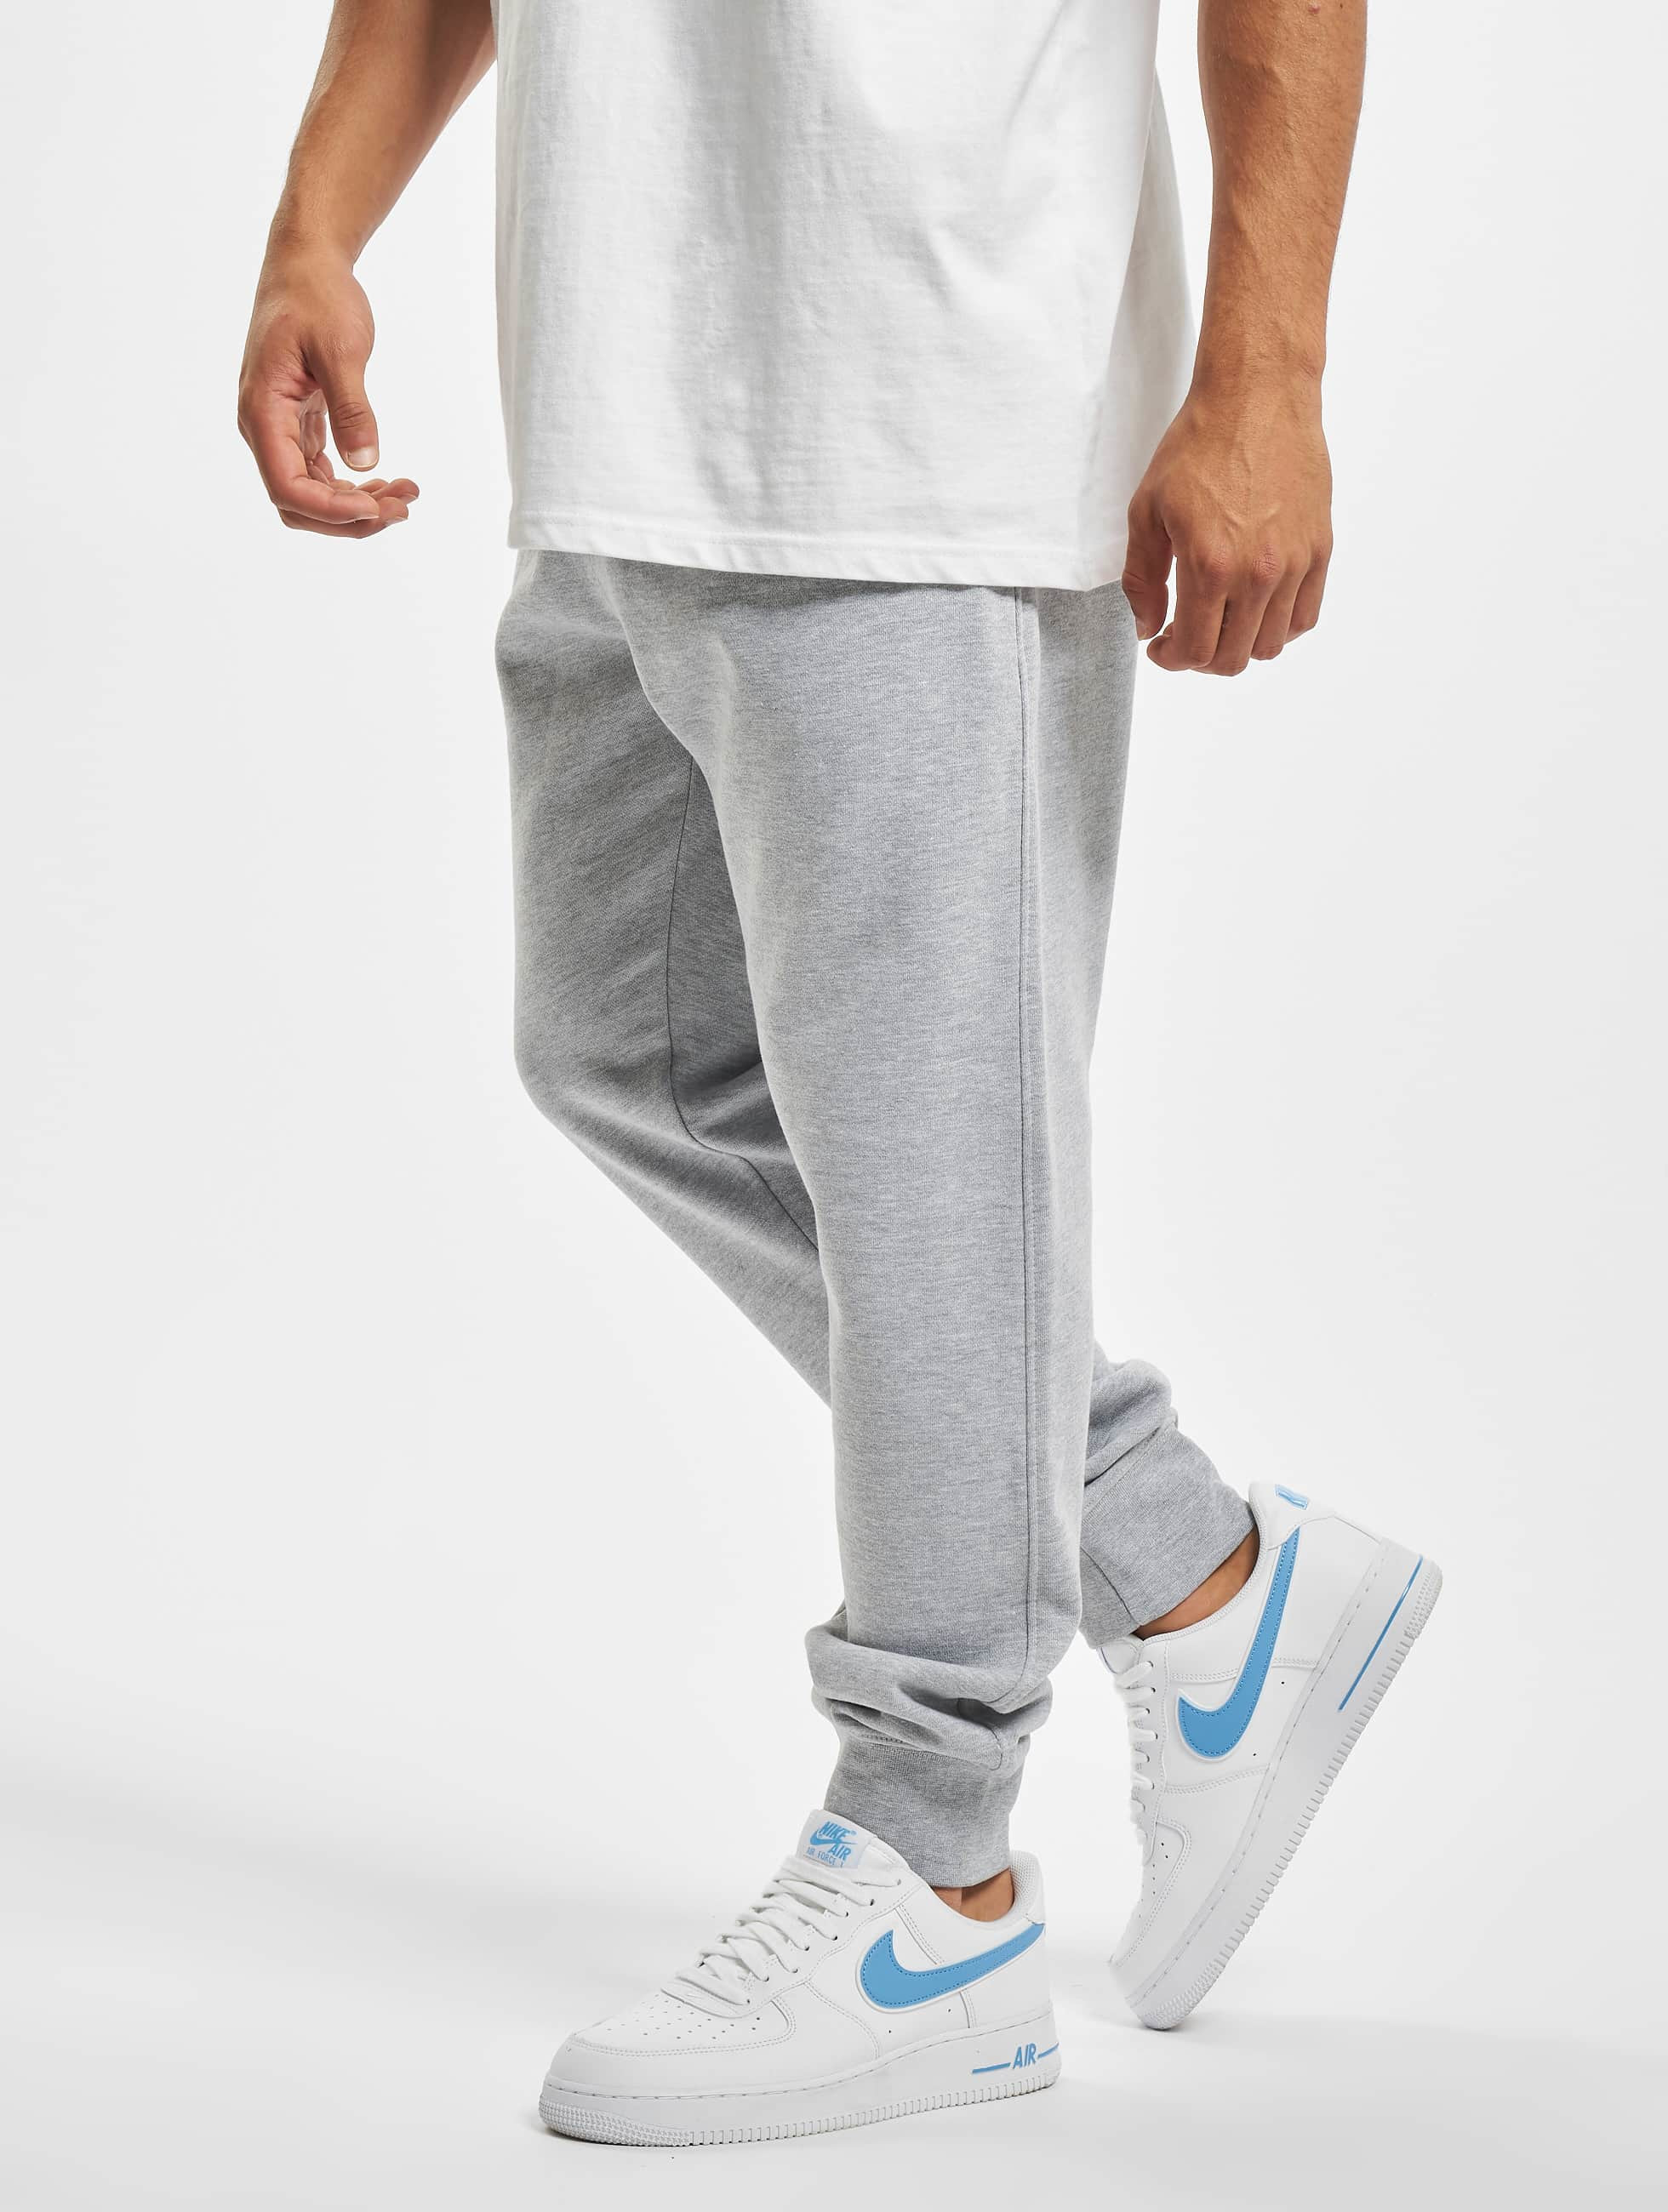 DEF / Sweat Pant Dimi in grey 3XL